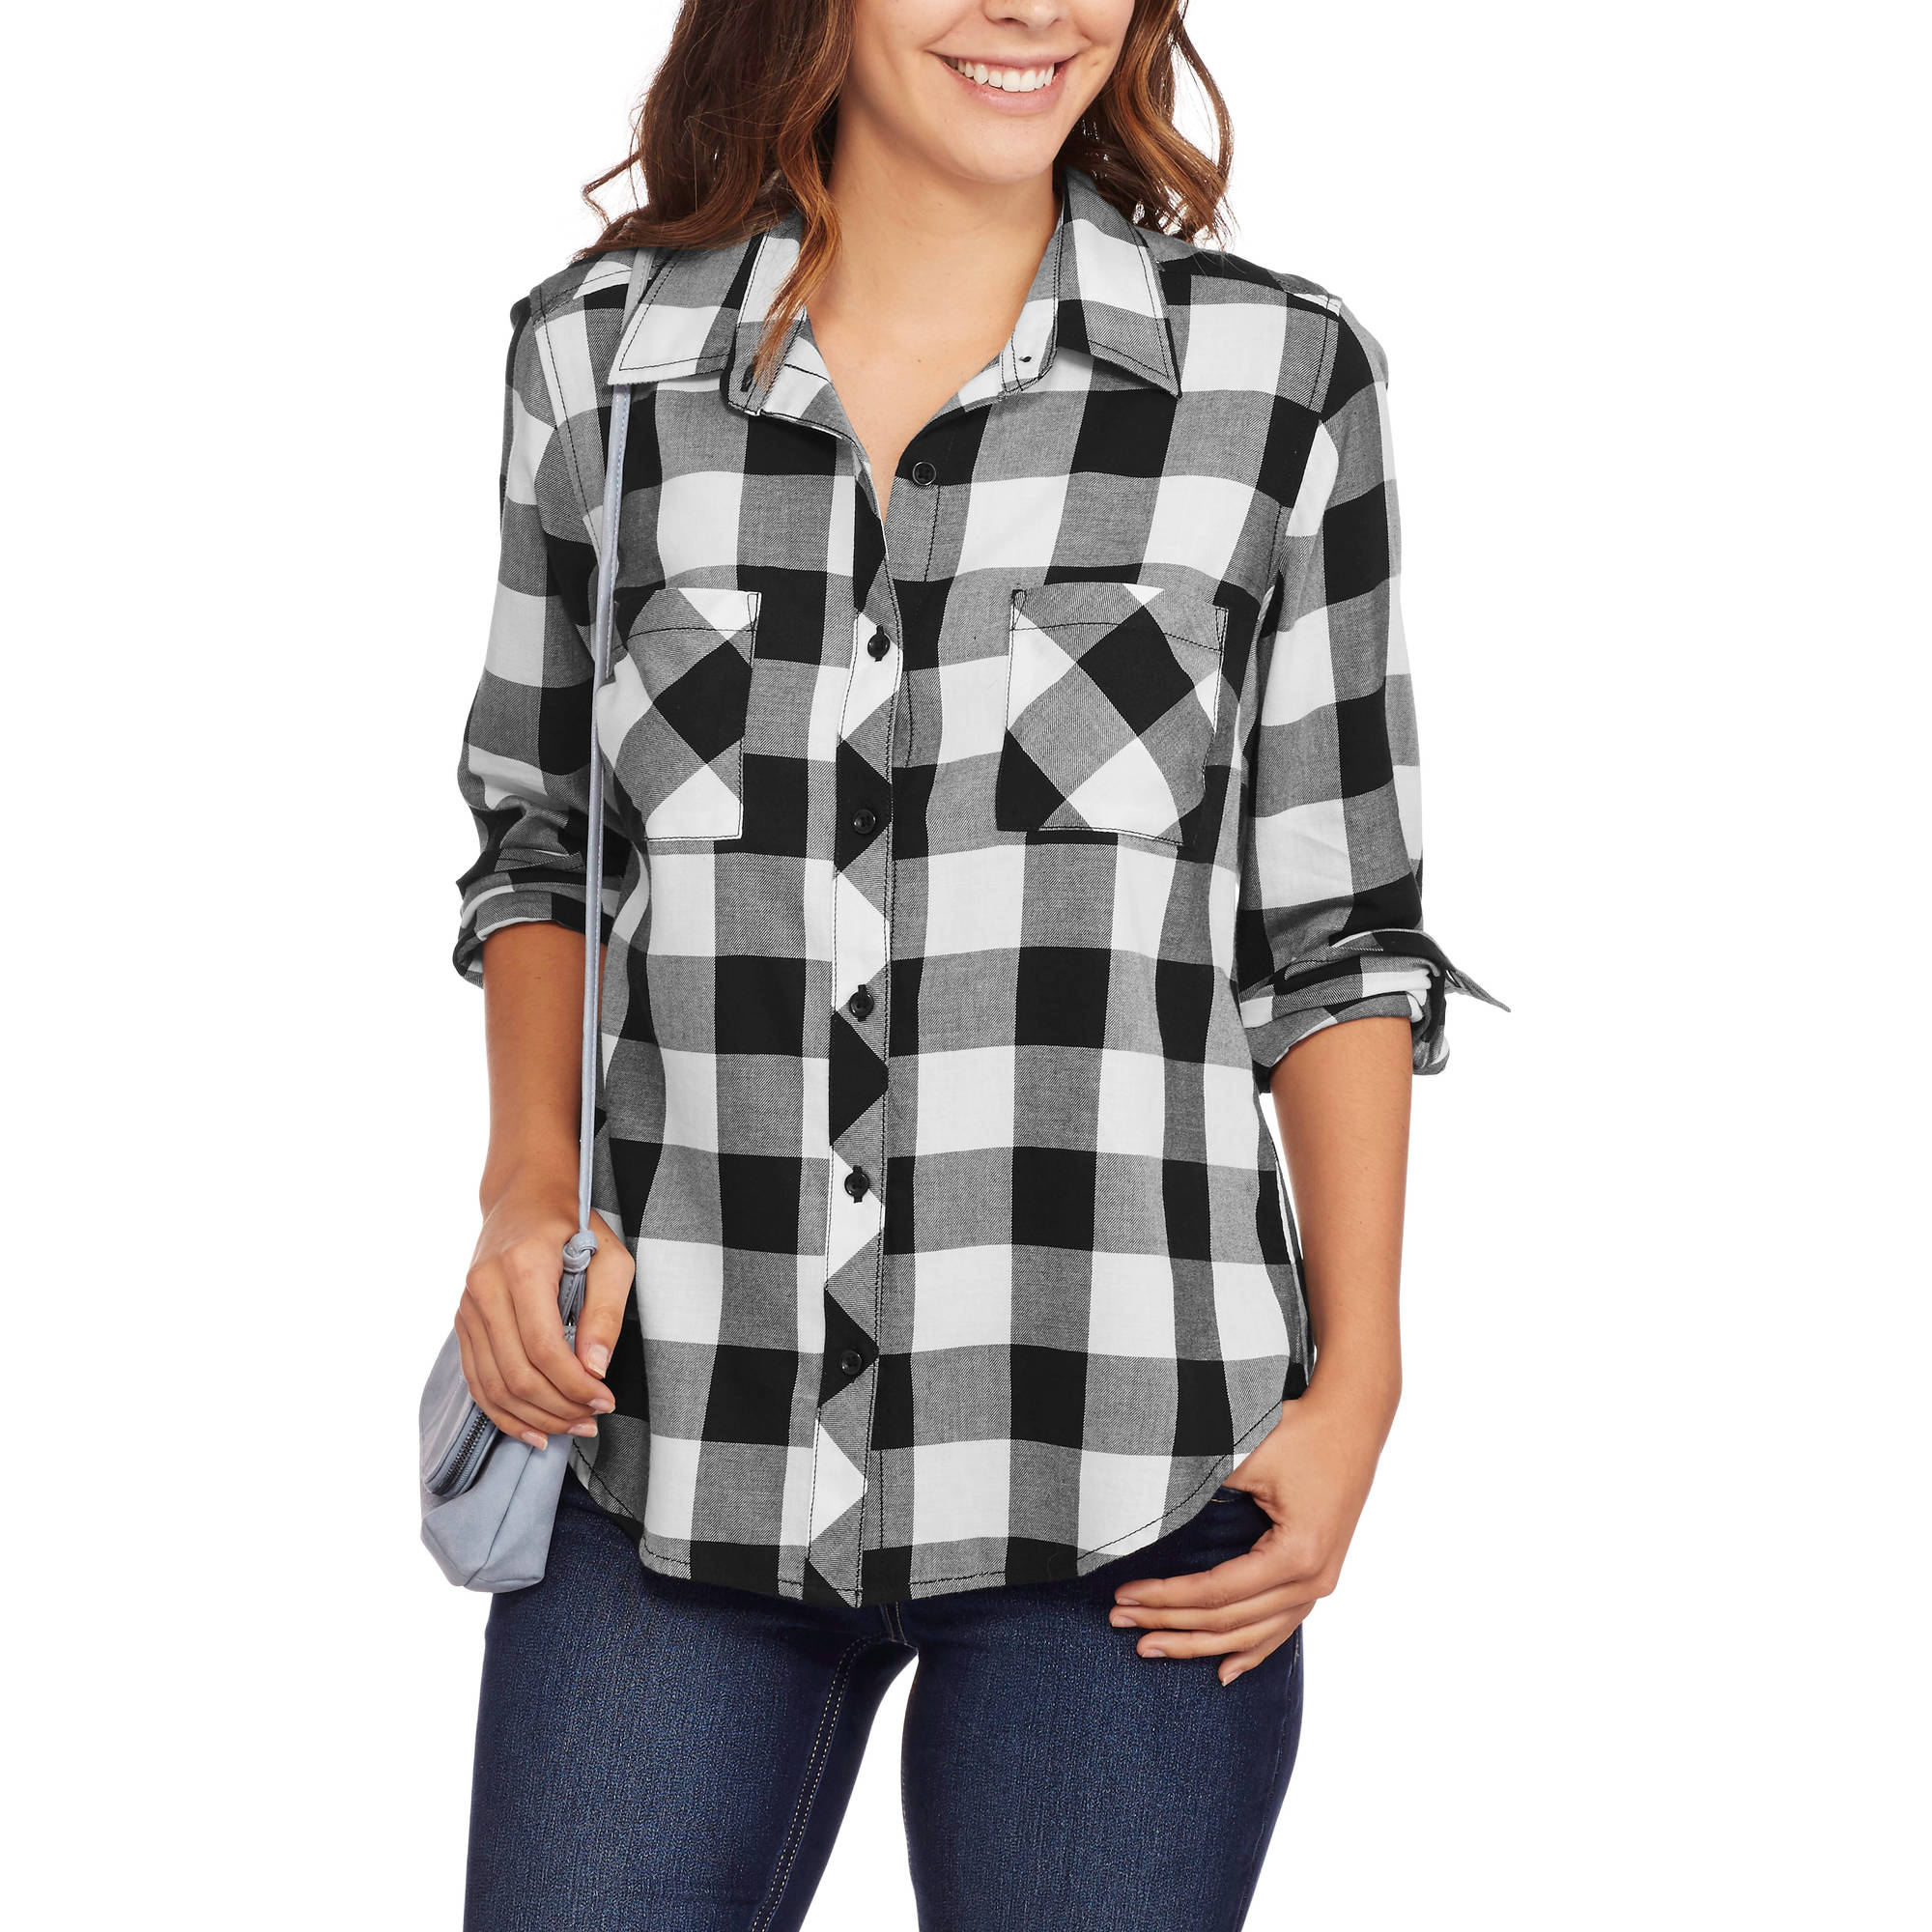 Faded Glory Women's Button Front Plaid Shirt with Roll Cuff Detail